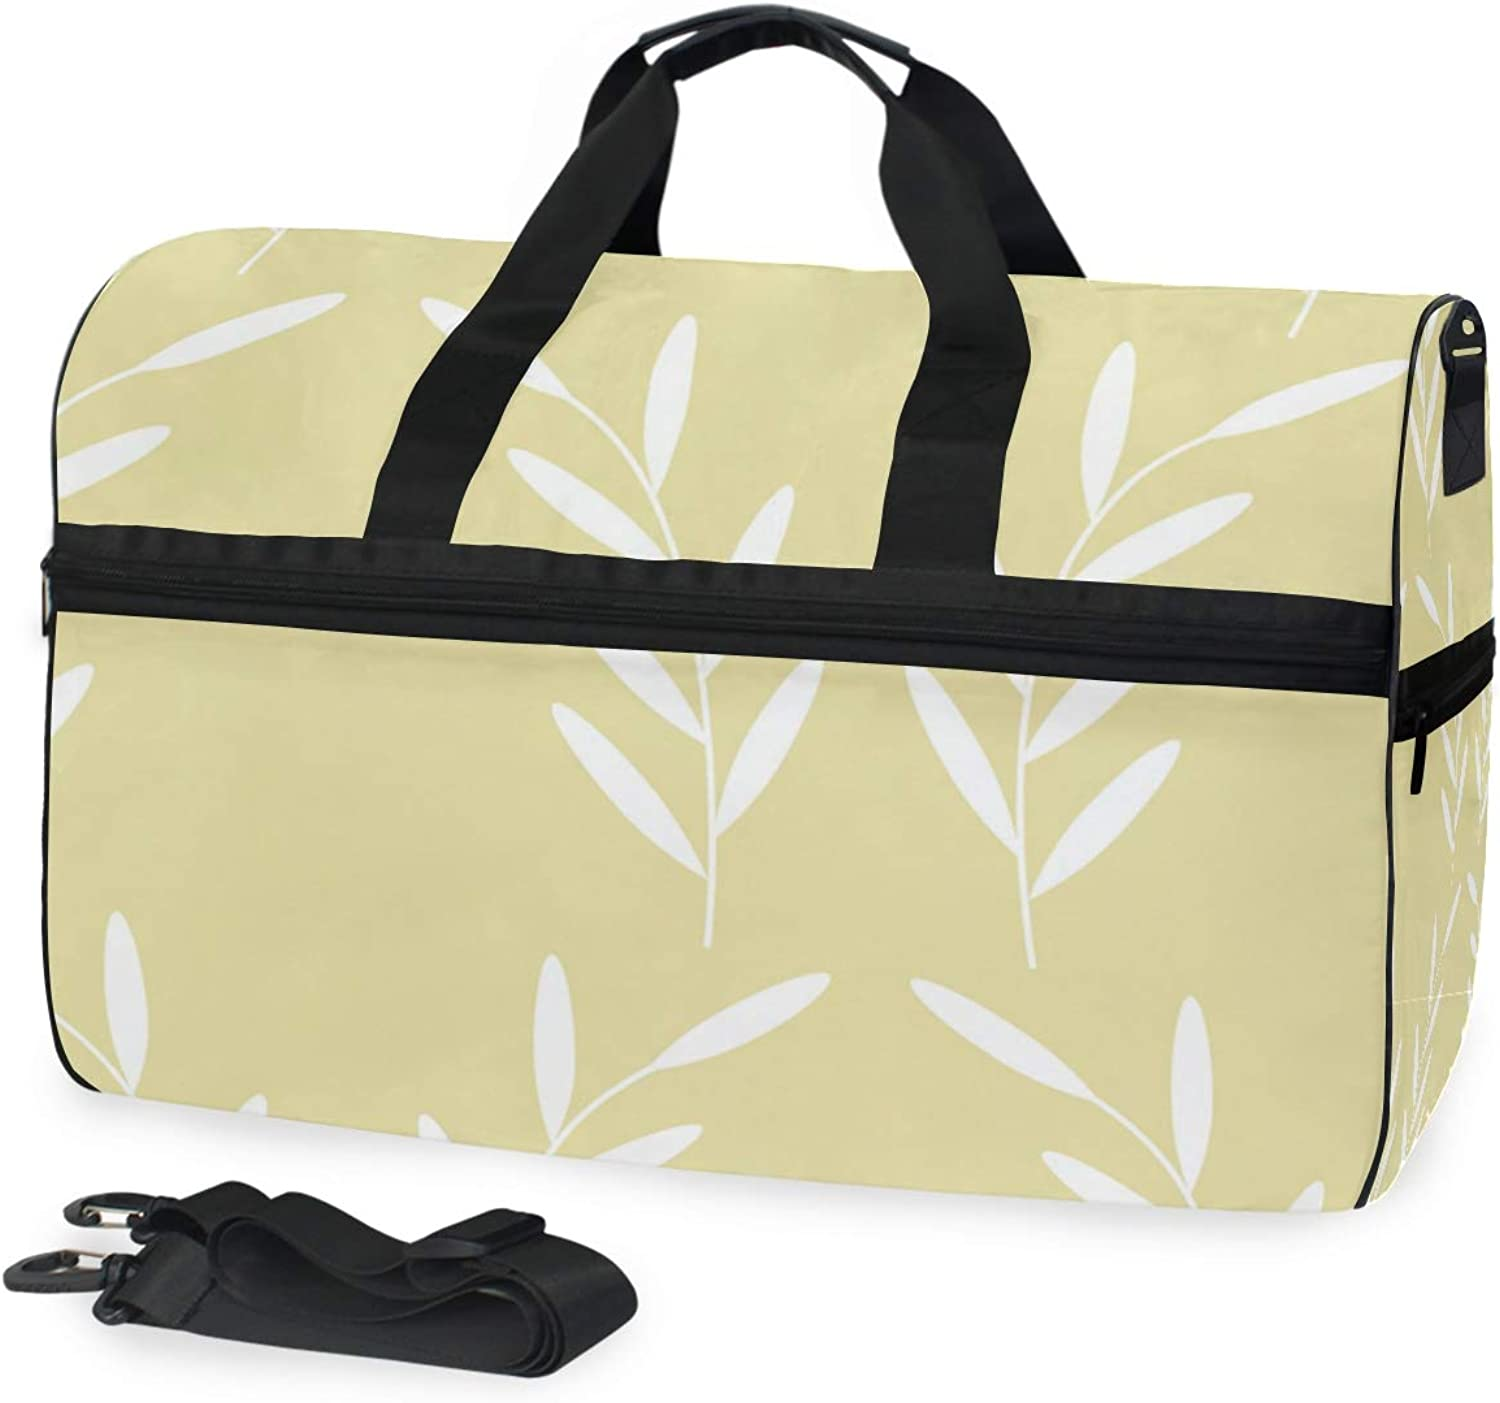 FANTAZIO White Flower Yellow Background Sports Duffle Bag Gym Bag Travel Duffel with Adjustable Strap